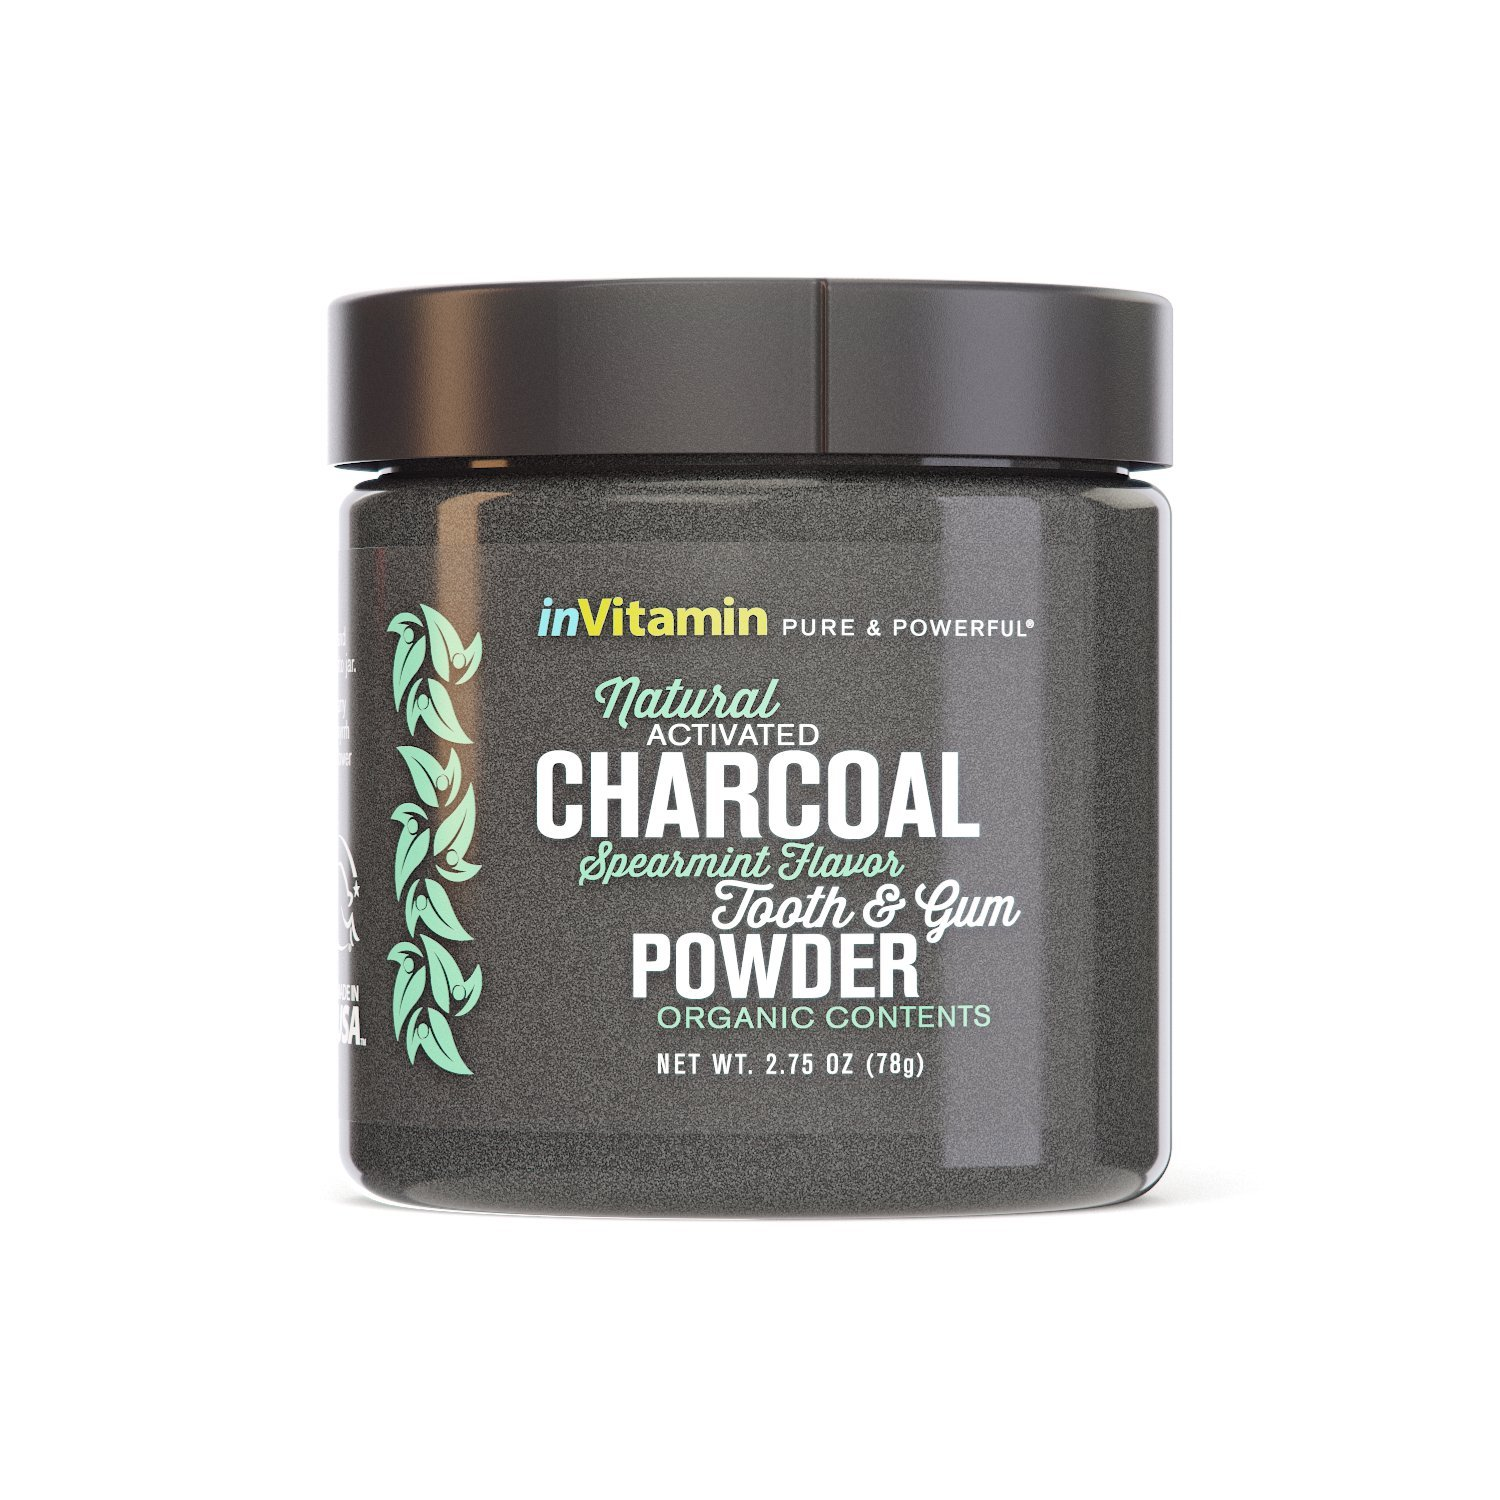 InVitamin Natural Whitening Activated Charcoal Powder for Teeth and Gums (Spearmint)